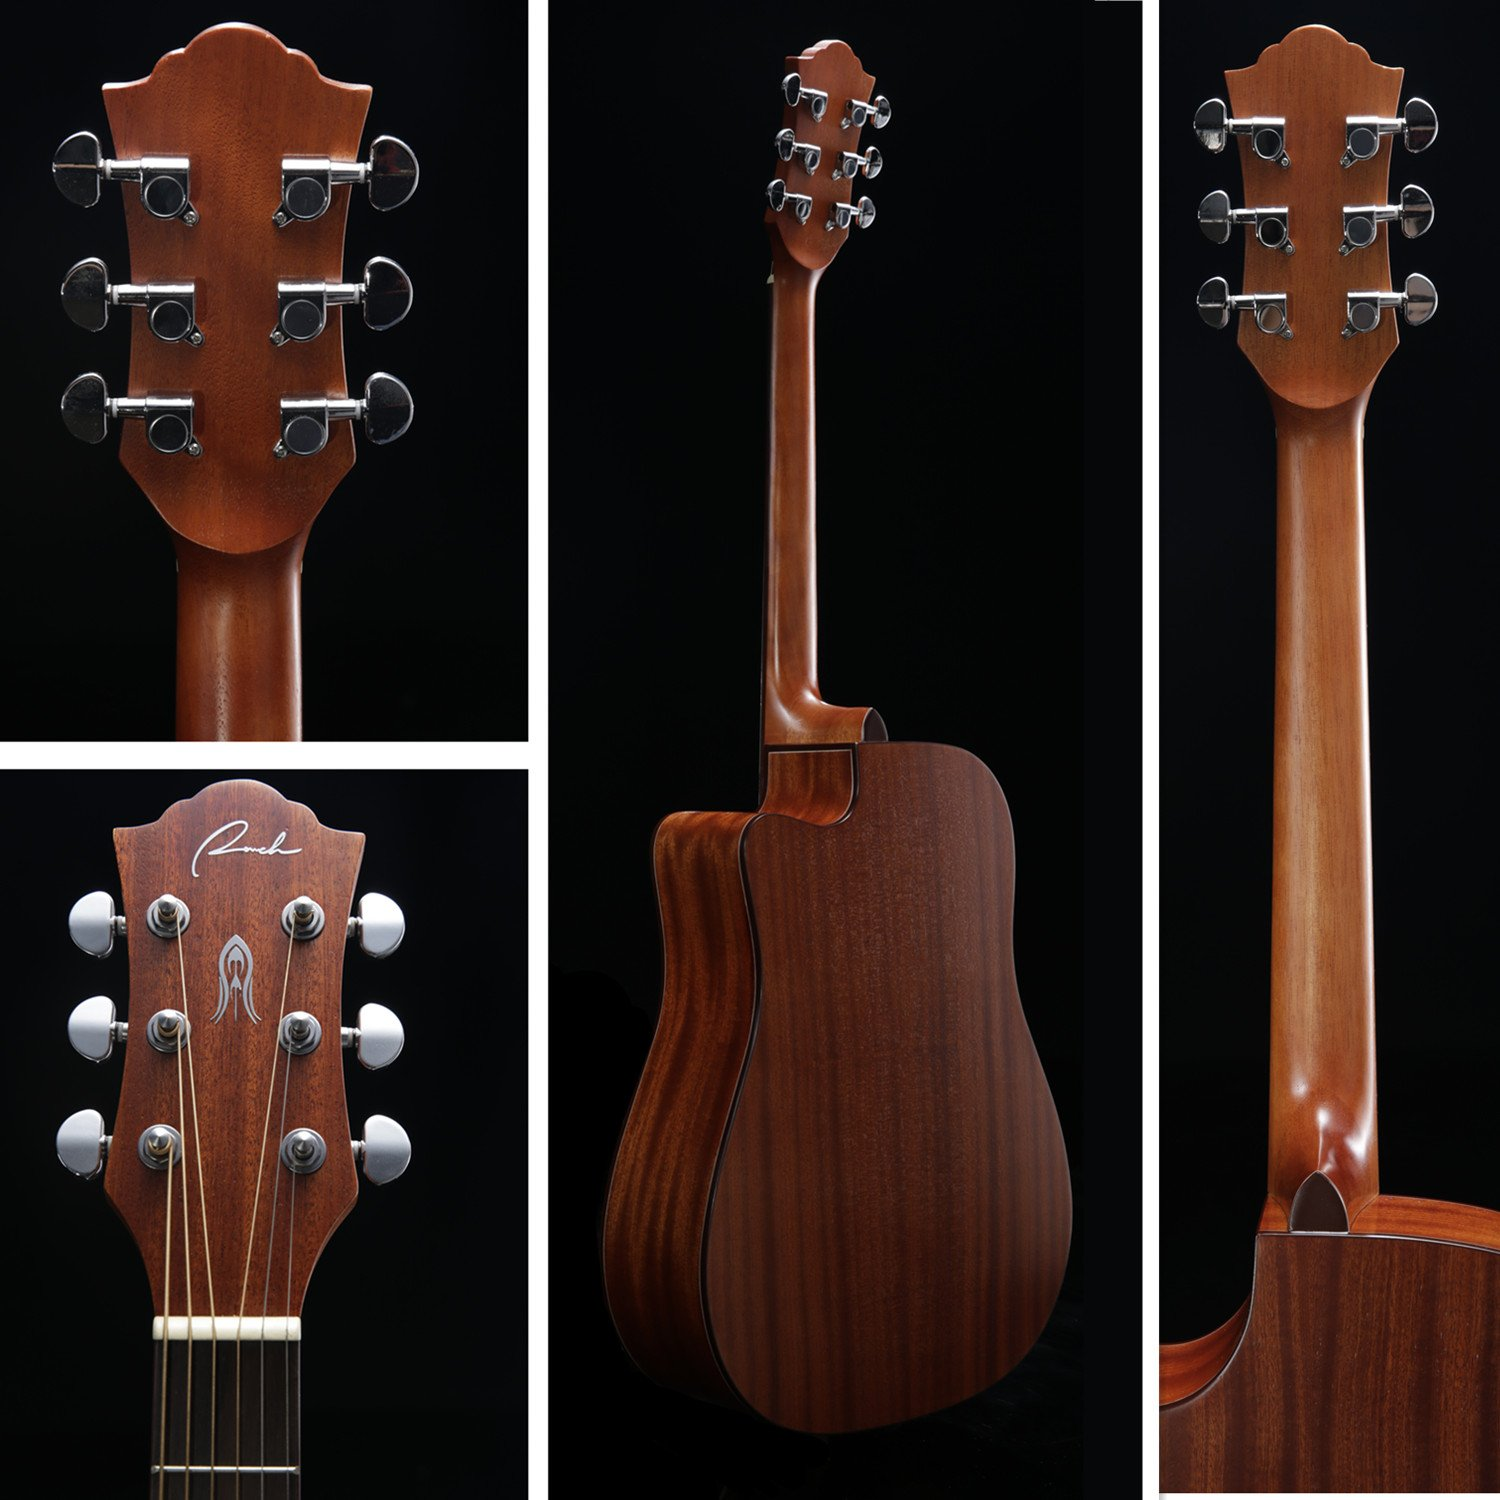 Different Views of the Guitar Ranch Full Size Cutaway Dreadnought Acoustic Guitar